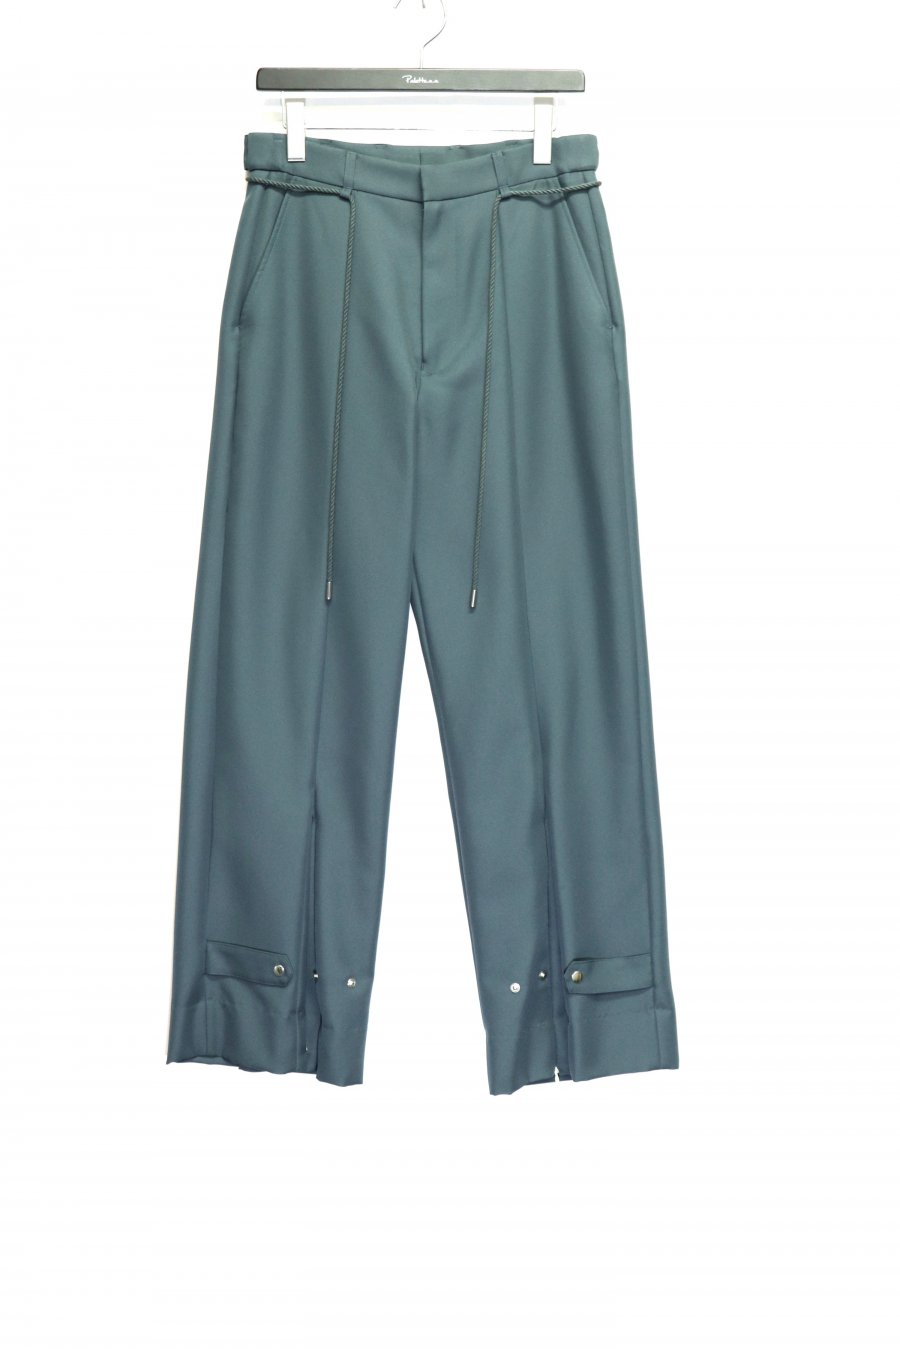 SYU.HOMME/FEMM  Nuskater pants type Po(D.GRAY)<img class='new_mark_img2' src='https://img.shop-pro.jp/img/new/icons15.gif' style='border:none;display:inline;margin:0px;padding:0px;width:auto;' />